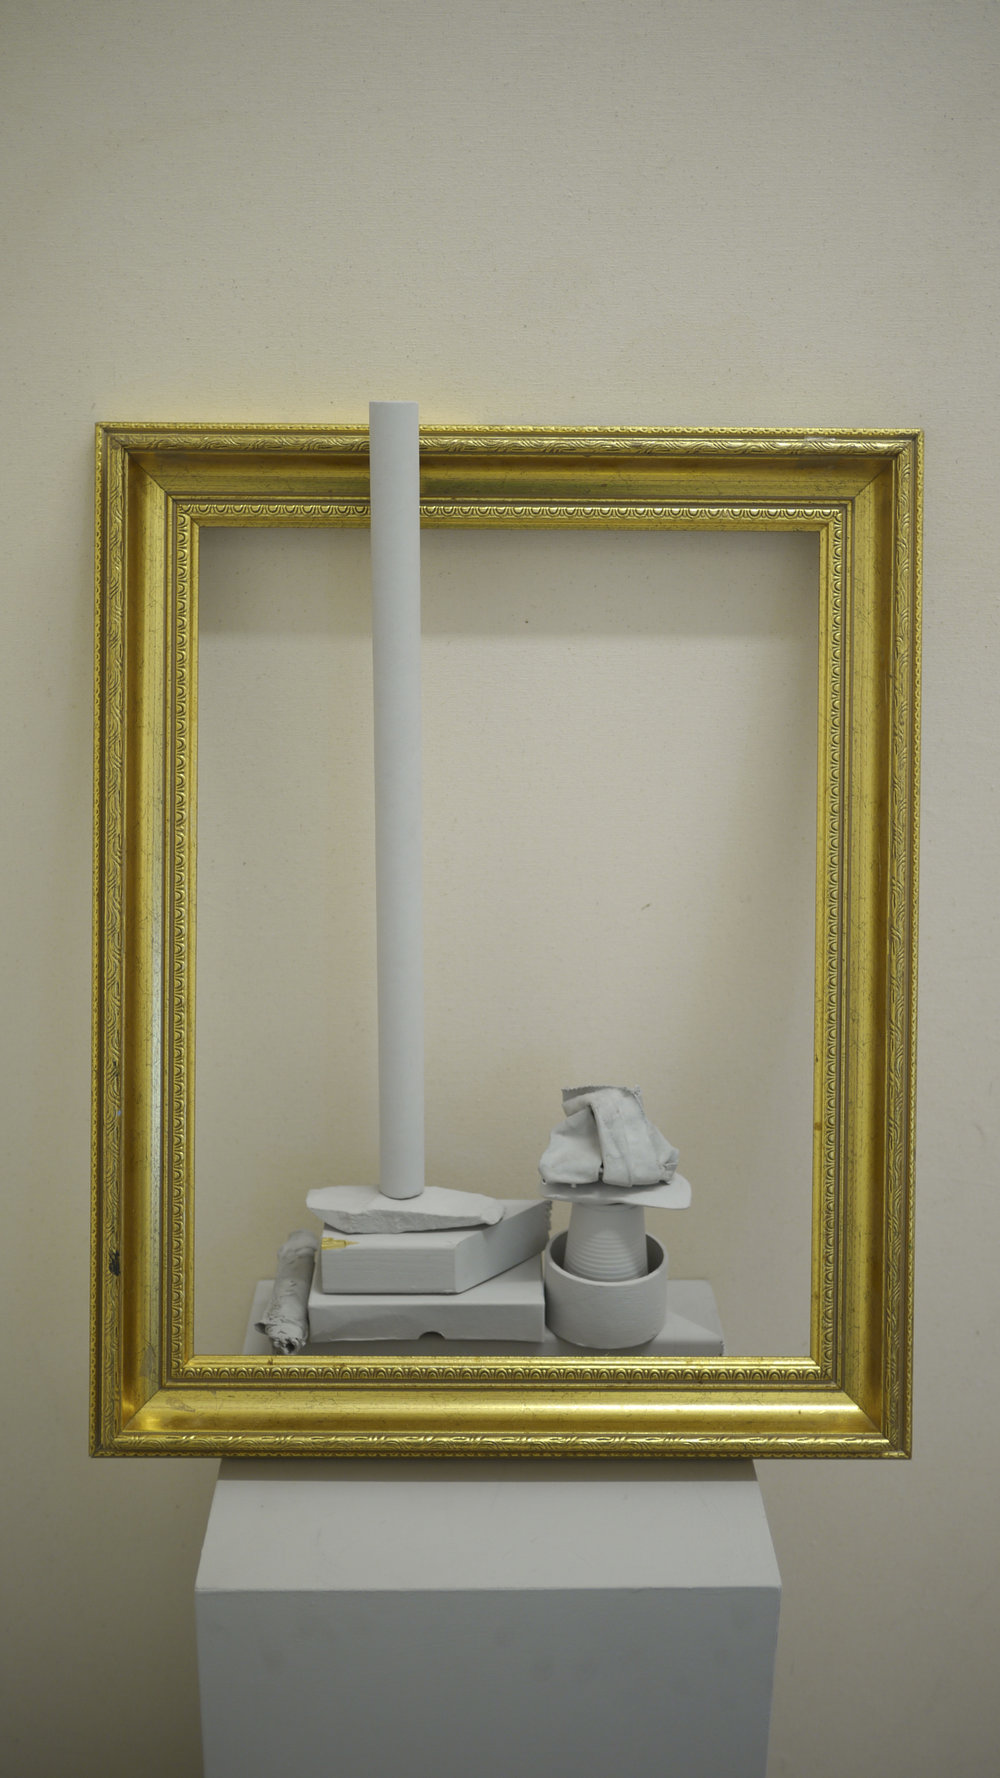 Ally McGinn (2017)  Enframed . found objects, emulsion paint, gold frame and canvas, 250 x 120 x 50 cm approximately.